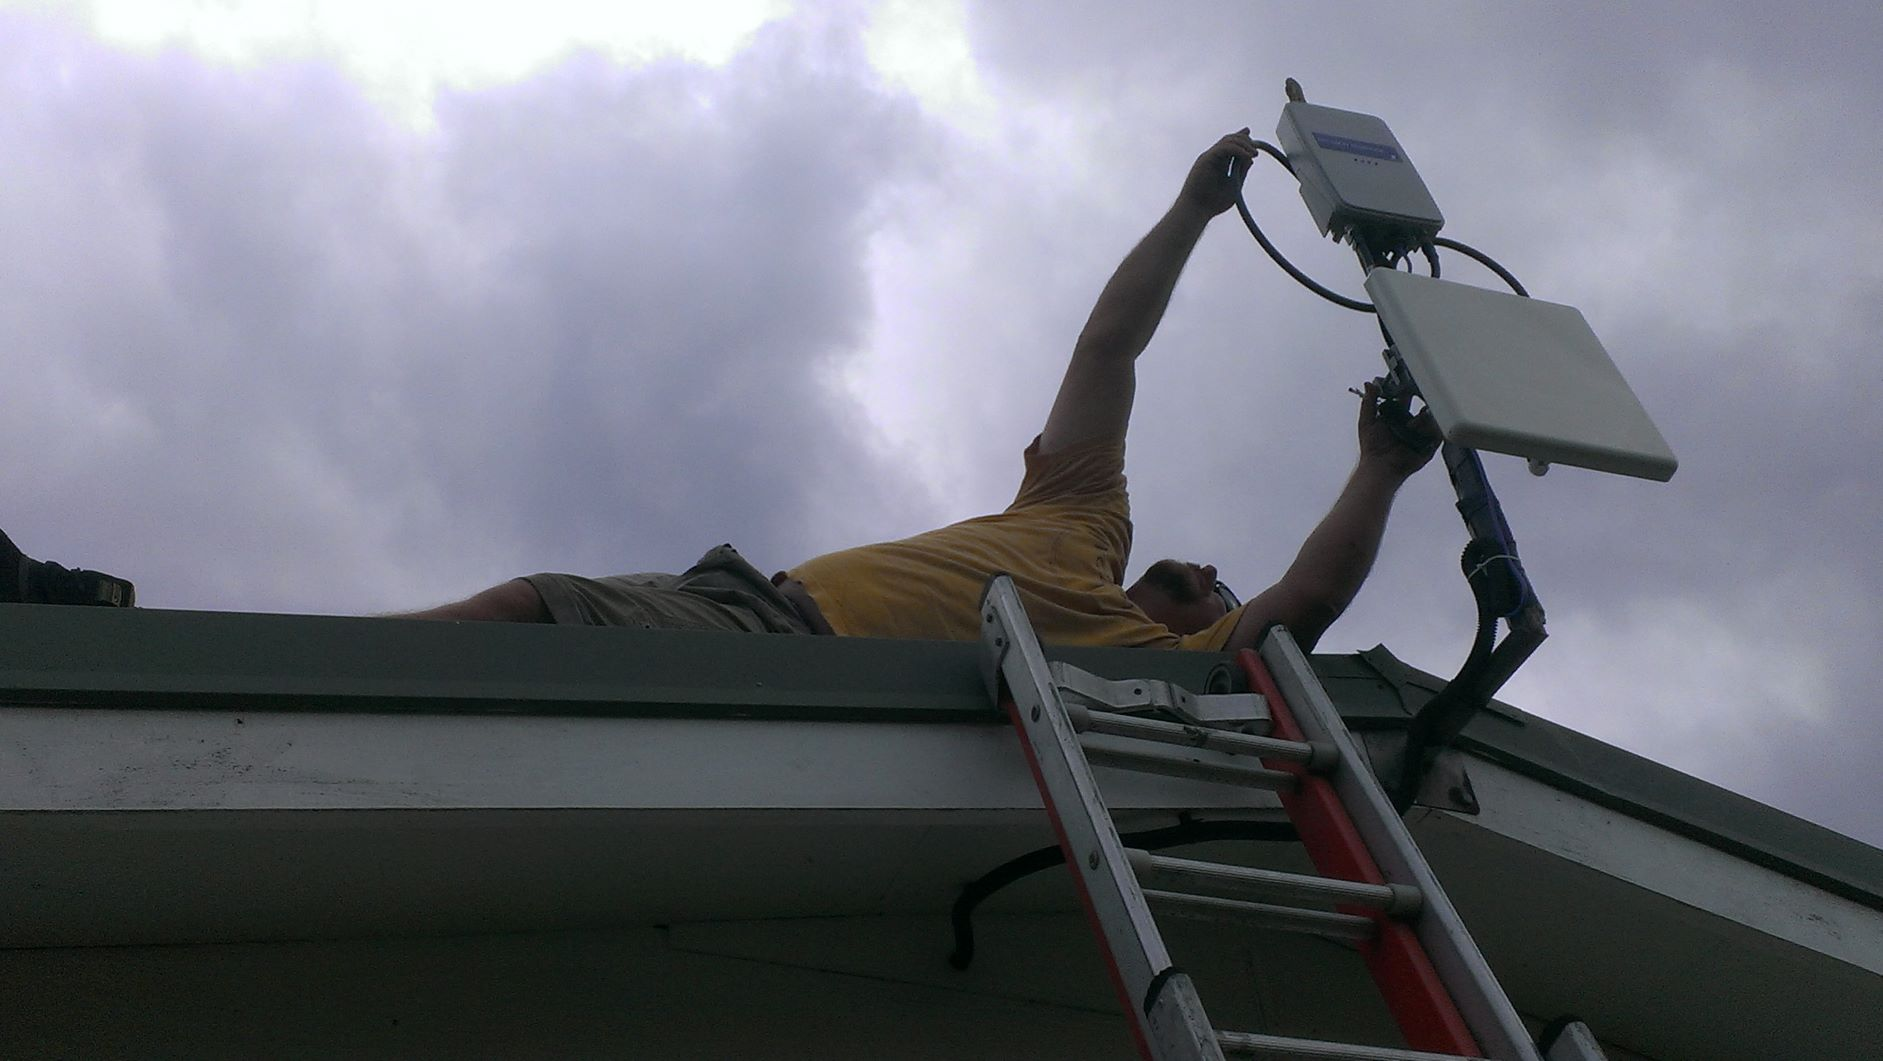 ETC personnel setting up an Internet point in Vanuatu.